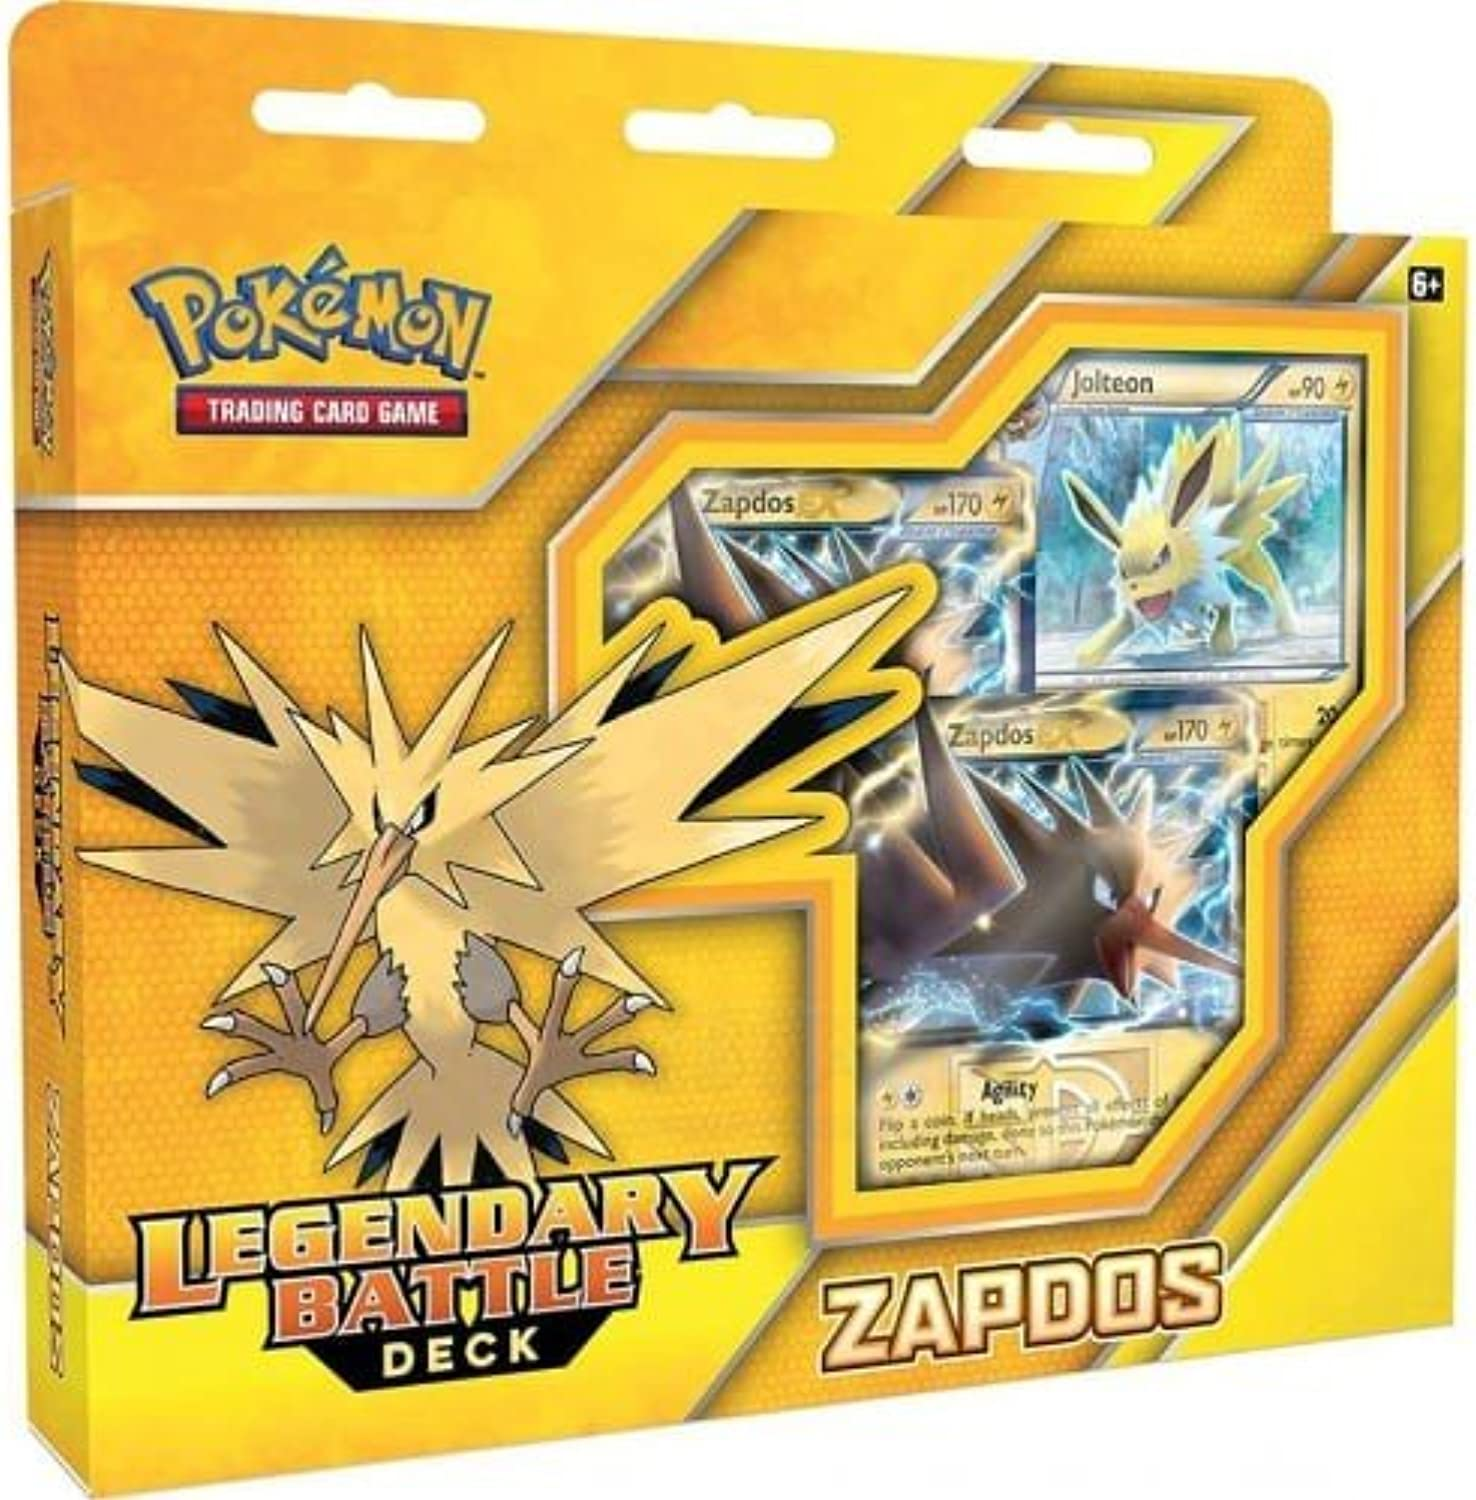 Pokémon TCG  Legendary Battle Decks  Zapdos  60 Card Deck  English